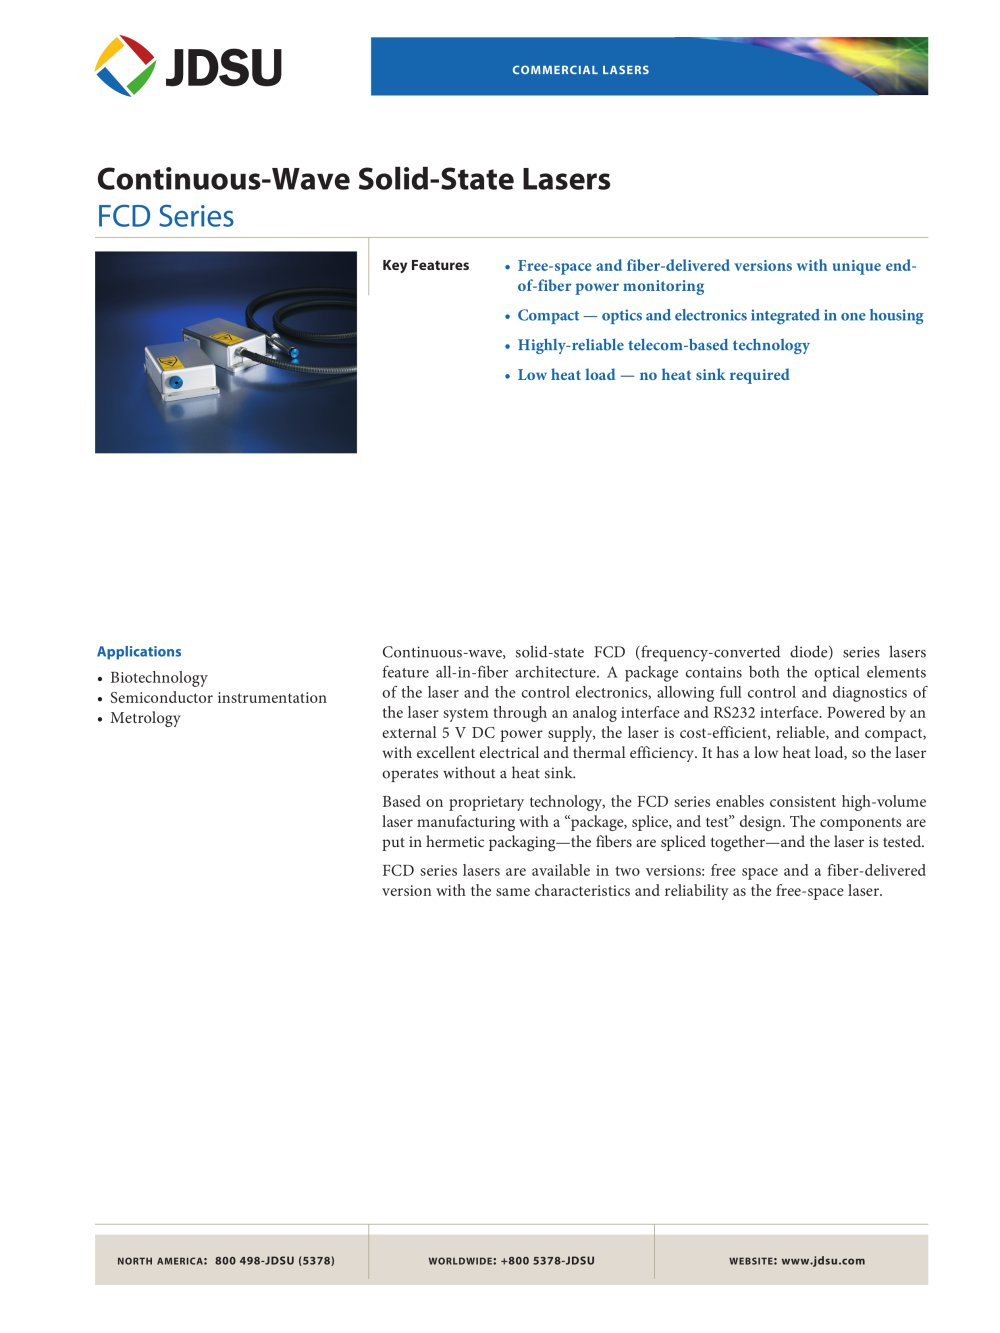 Continuous Wave Solid State Lasers Fcd Series Jdsu Pdf Rs232 Laser Transceiver 1 4 Pages